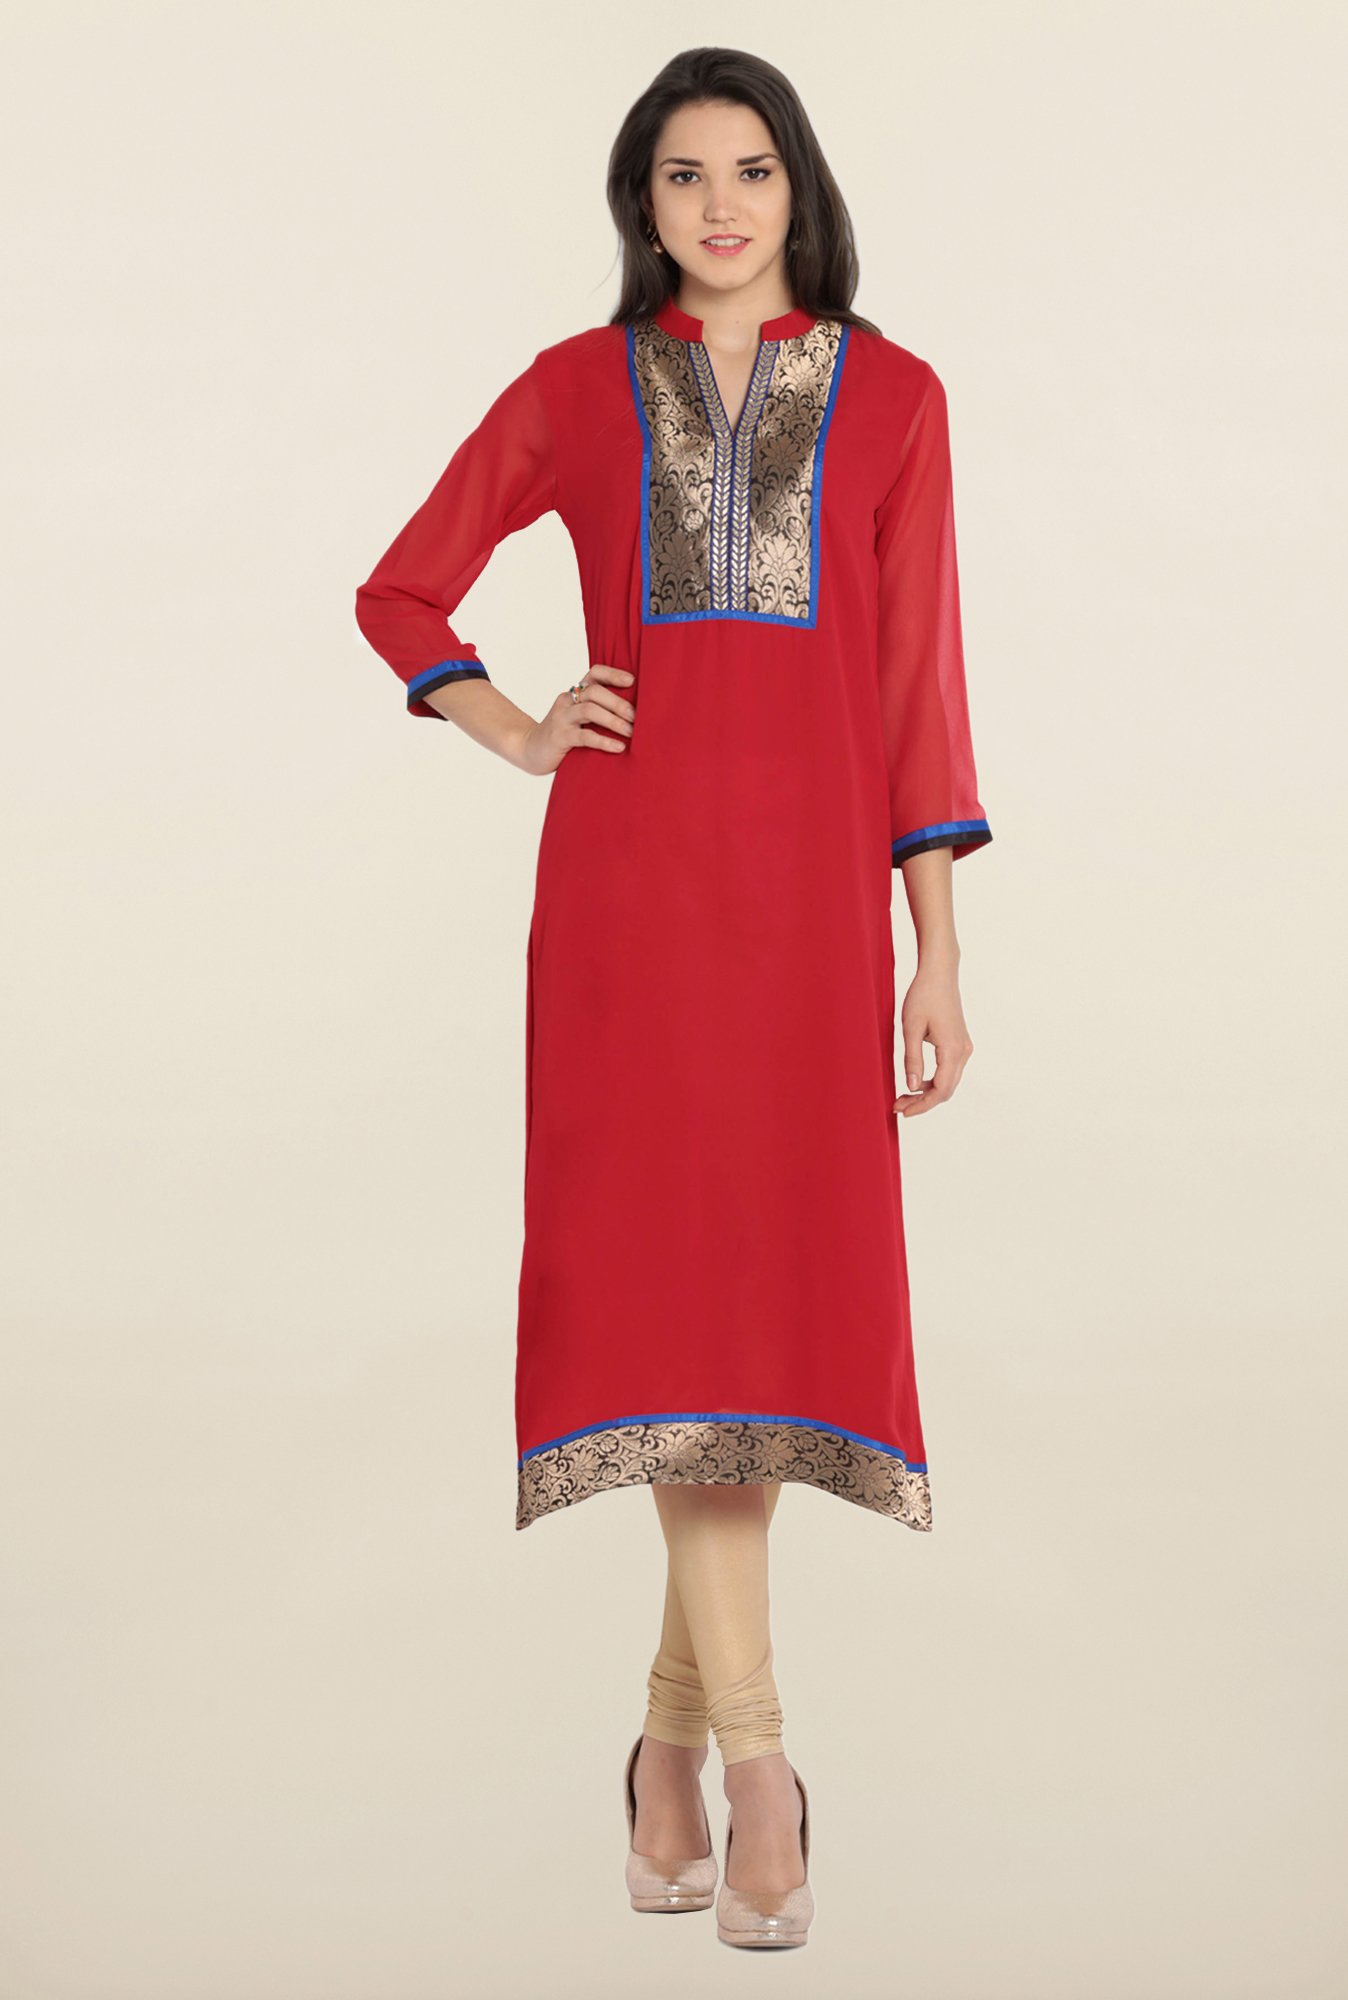 Soch Red & Gold Solid Kurta